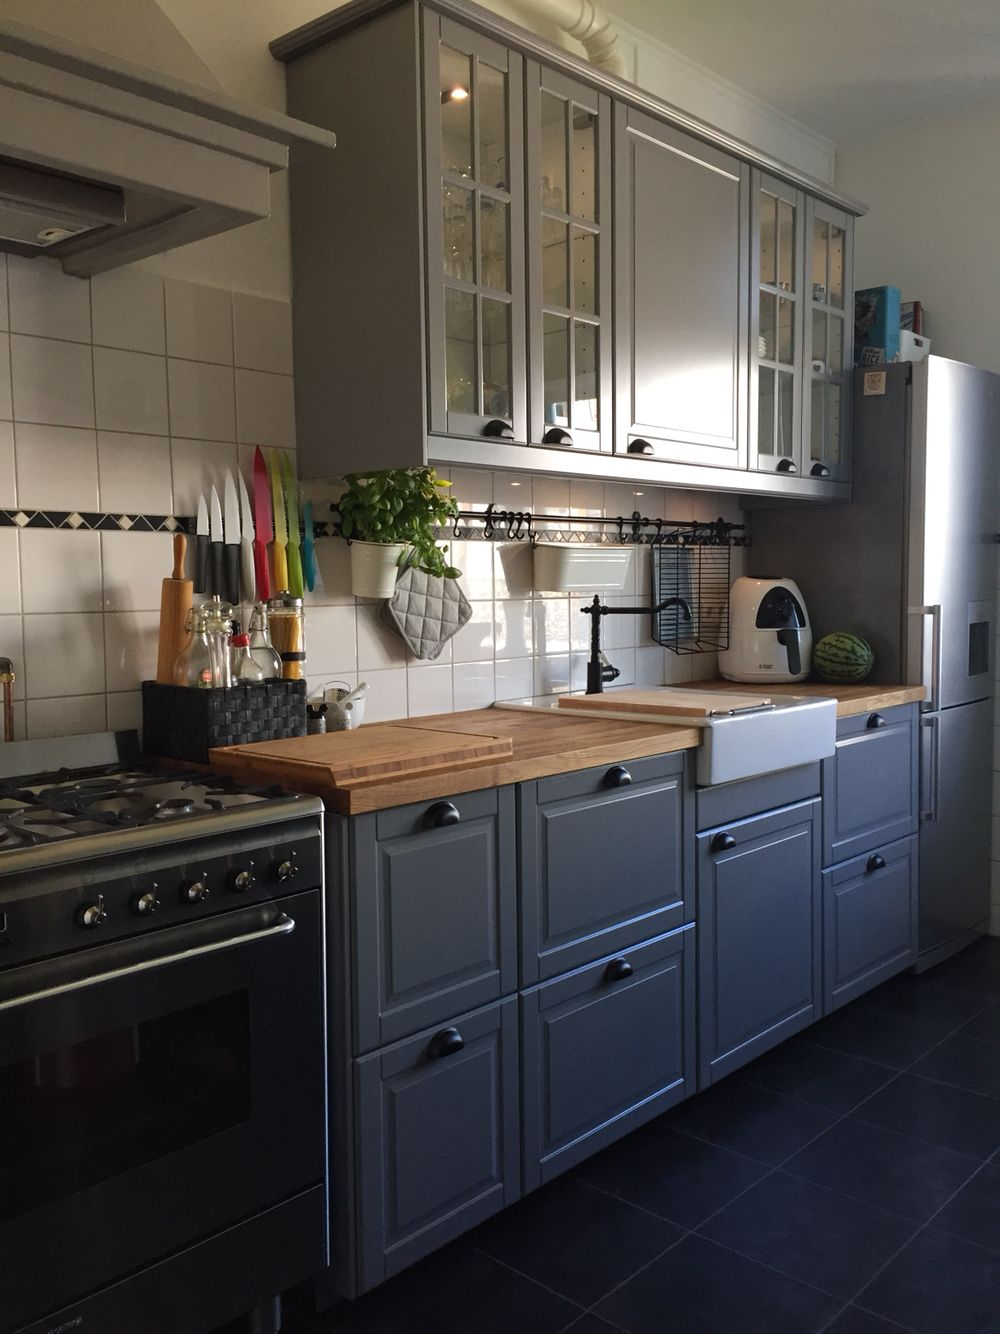 New Kitchen Ikea Bodbyn Grey Kitchen Inspiration Pinterest Bodbyn Grey Kitchens And Grey